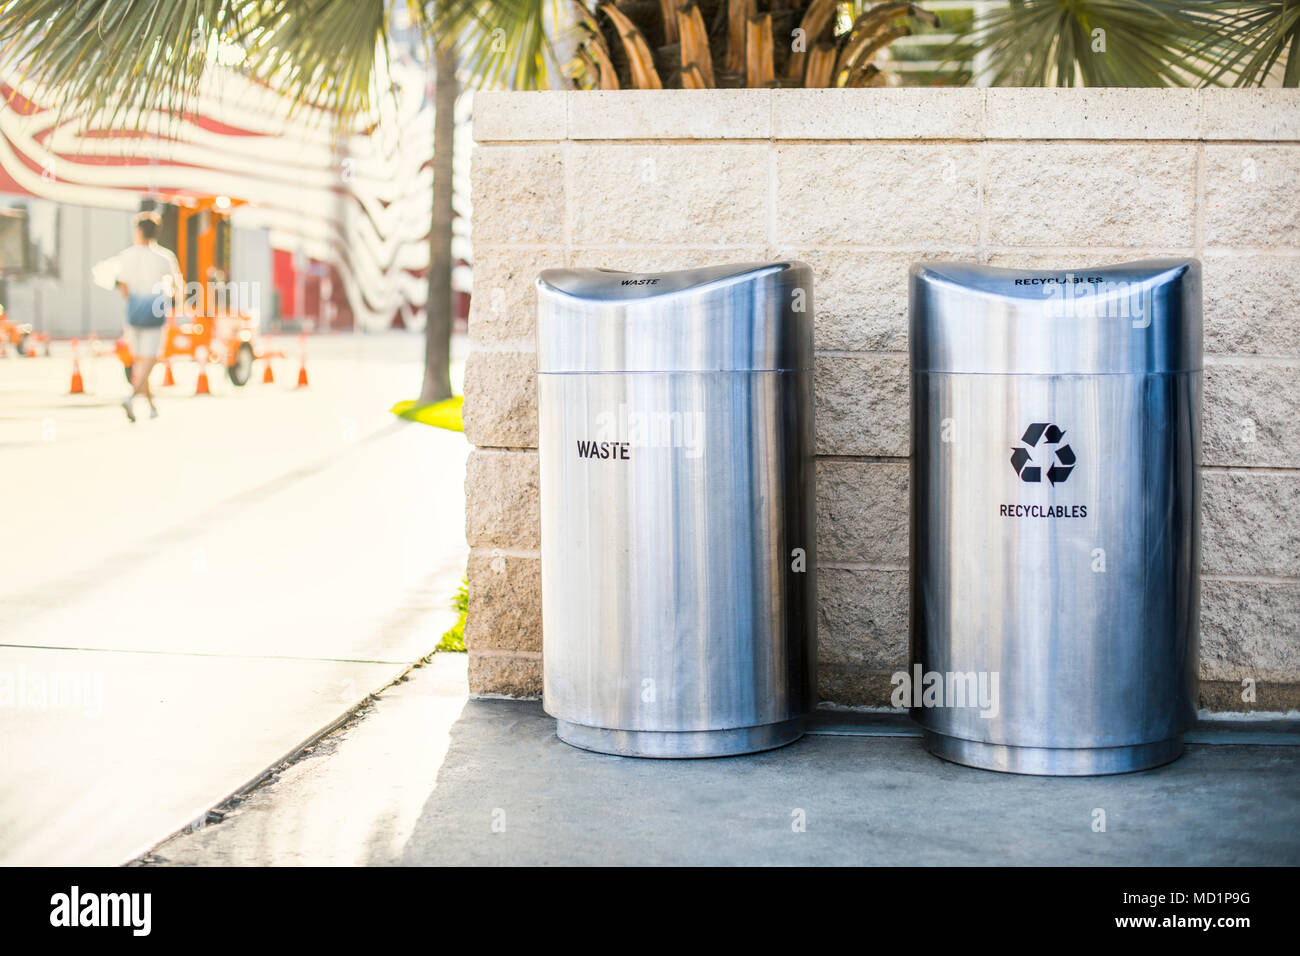 Separate garbage bins for recycled trash and waste installed on a sidewalk on the city street - Stock Image